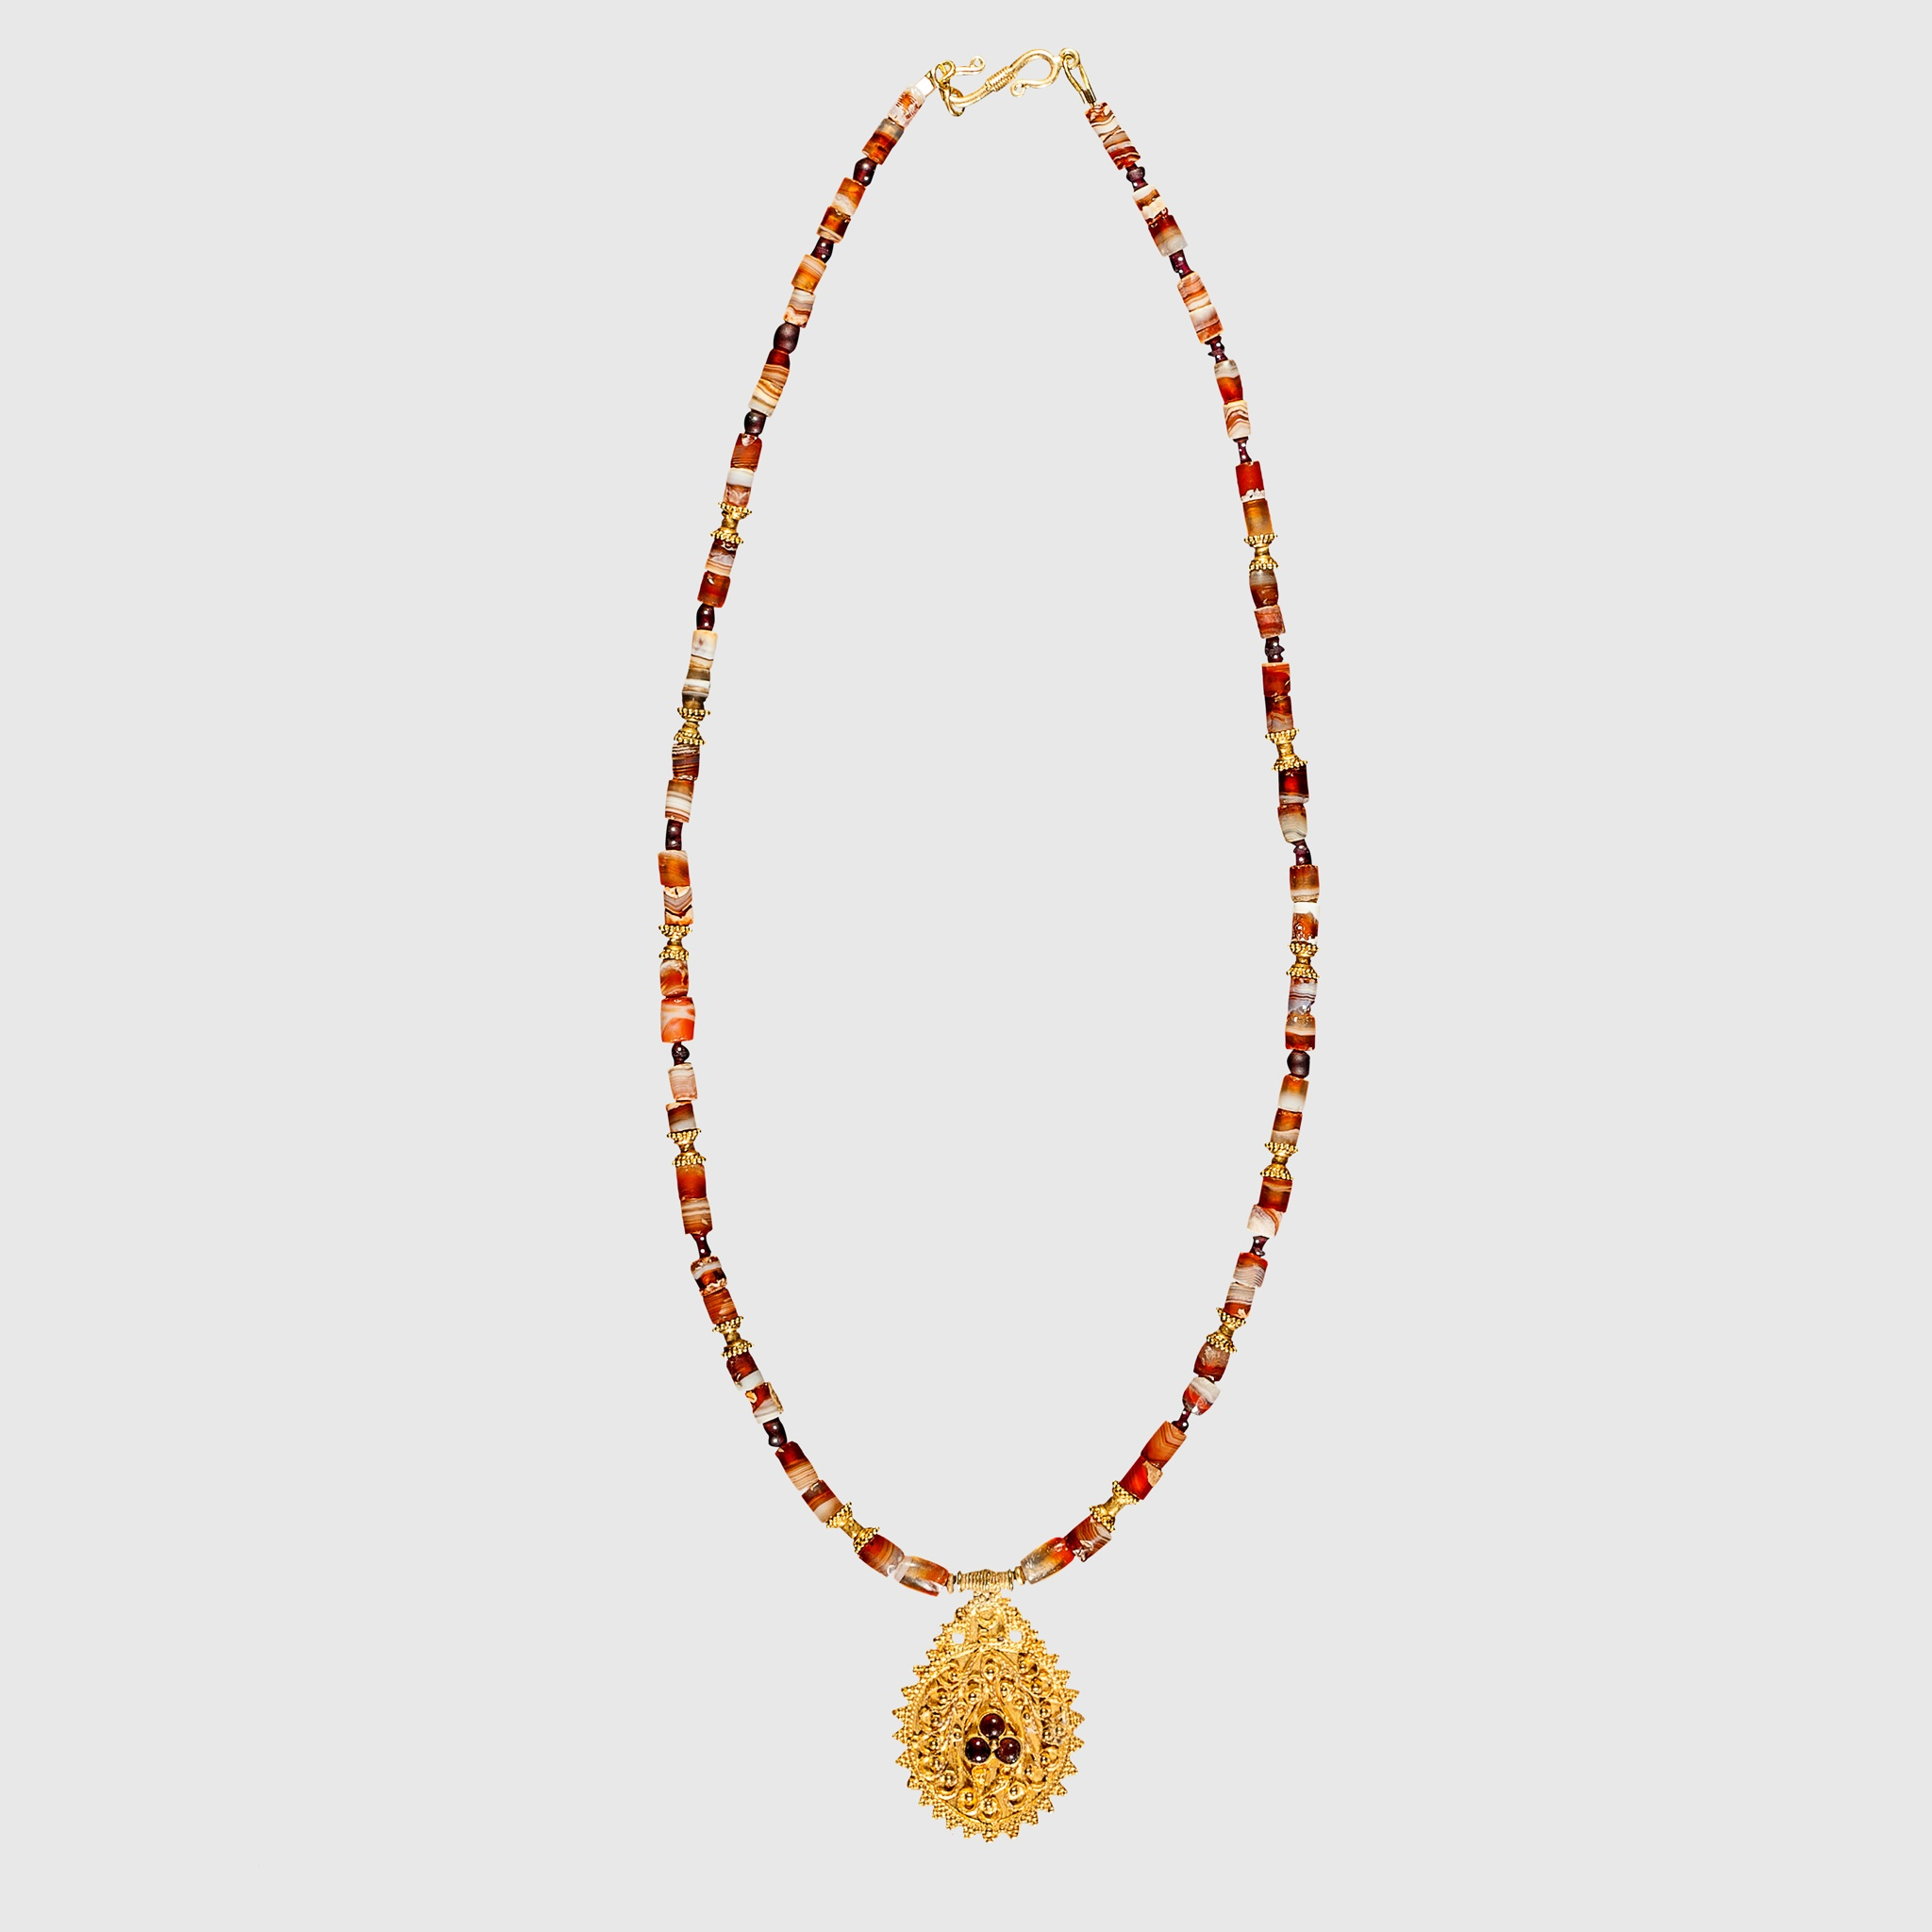 HELLENISTIC AGATE NECKLACE WITH GOLD PENDANT EASTERN MEDITERRANEAN, 3RD - 1ST CENTURY B.C.